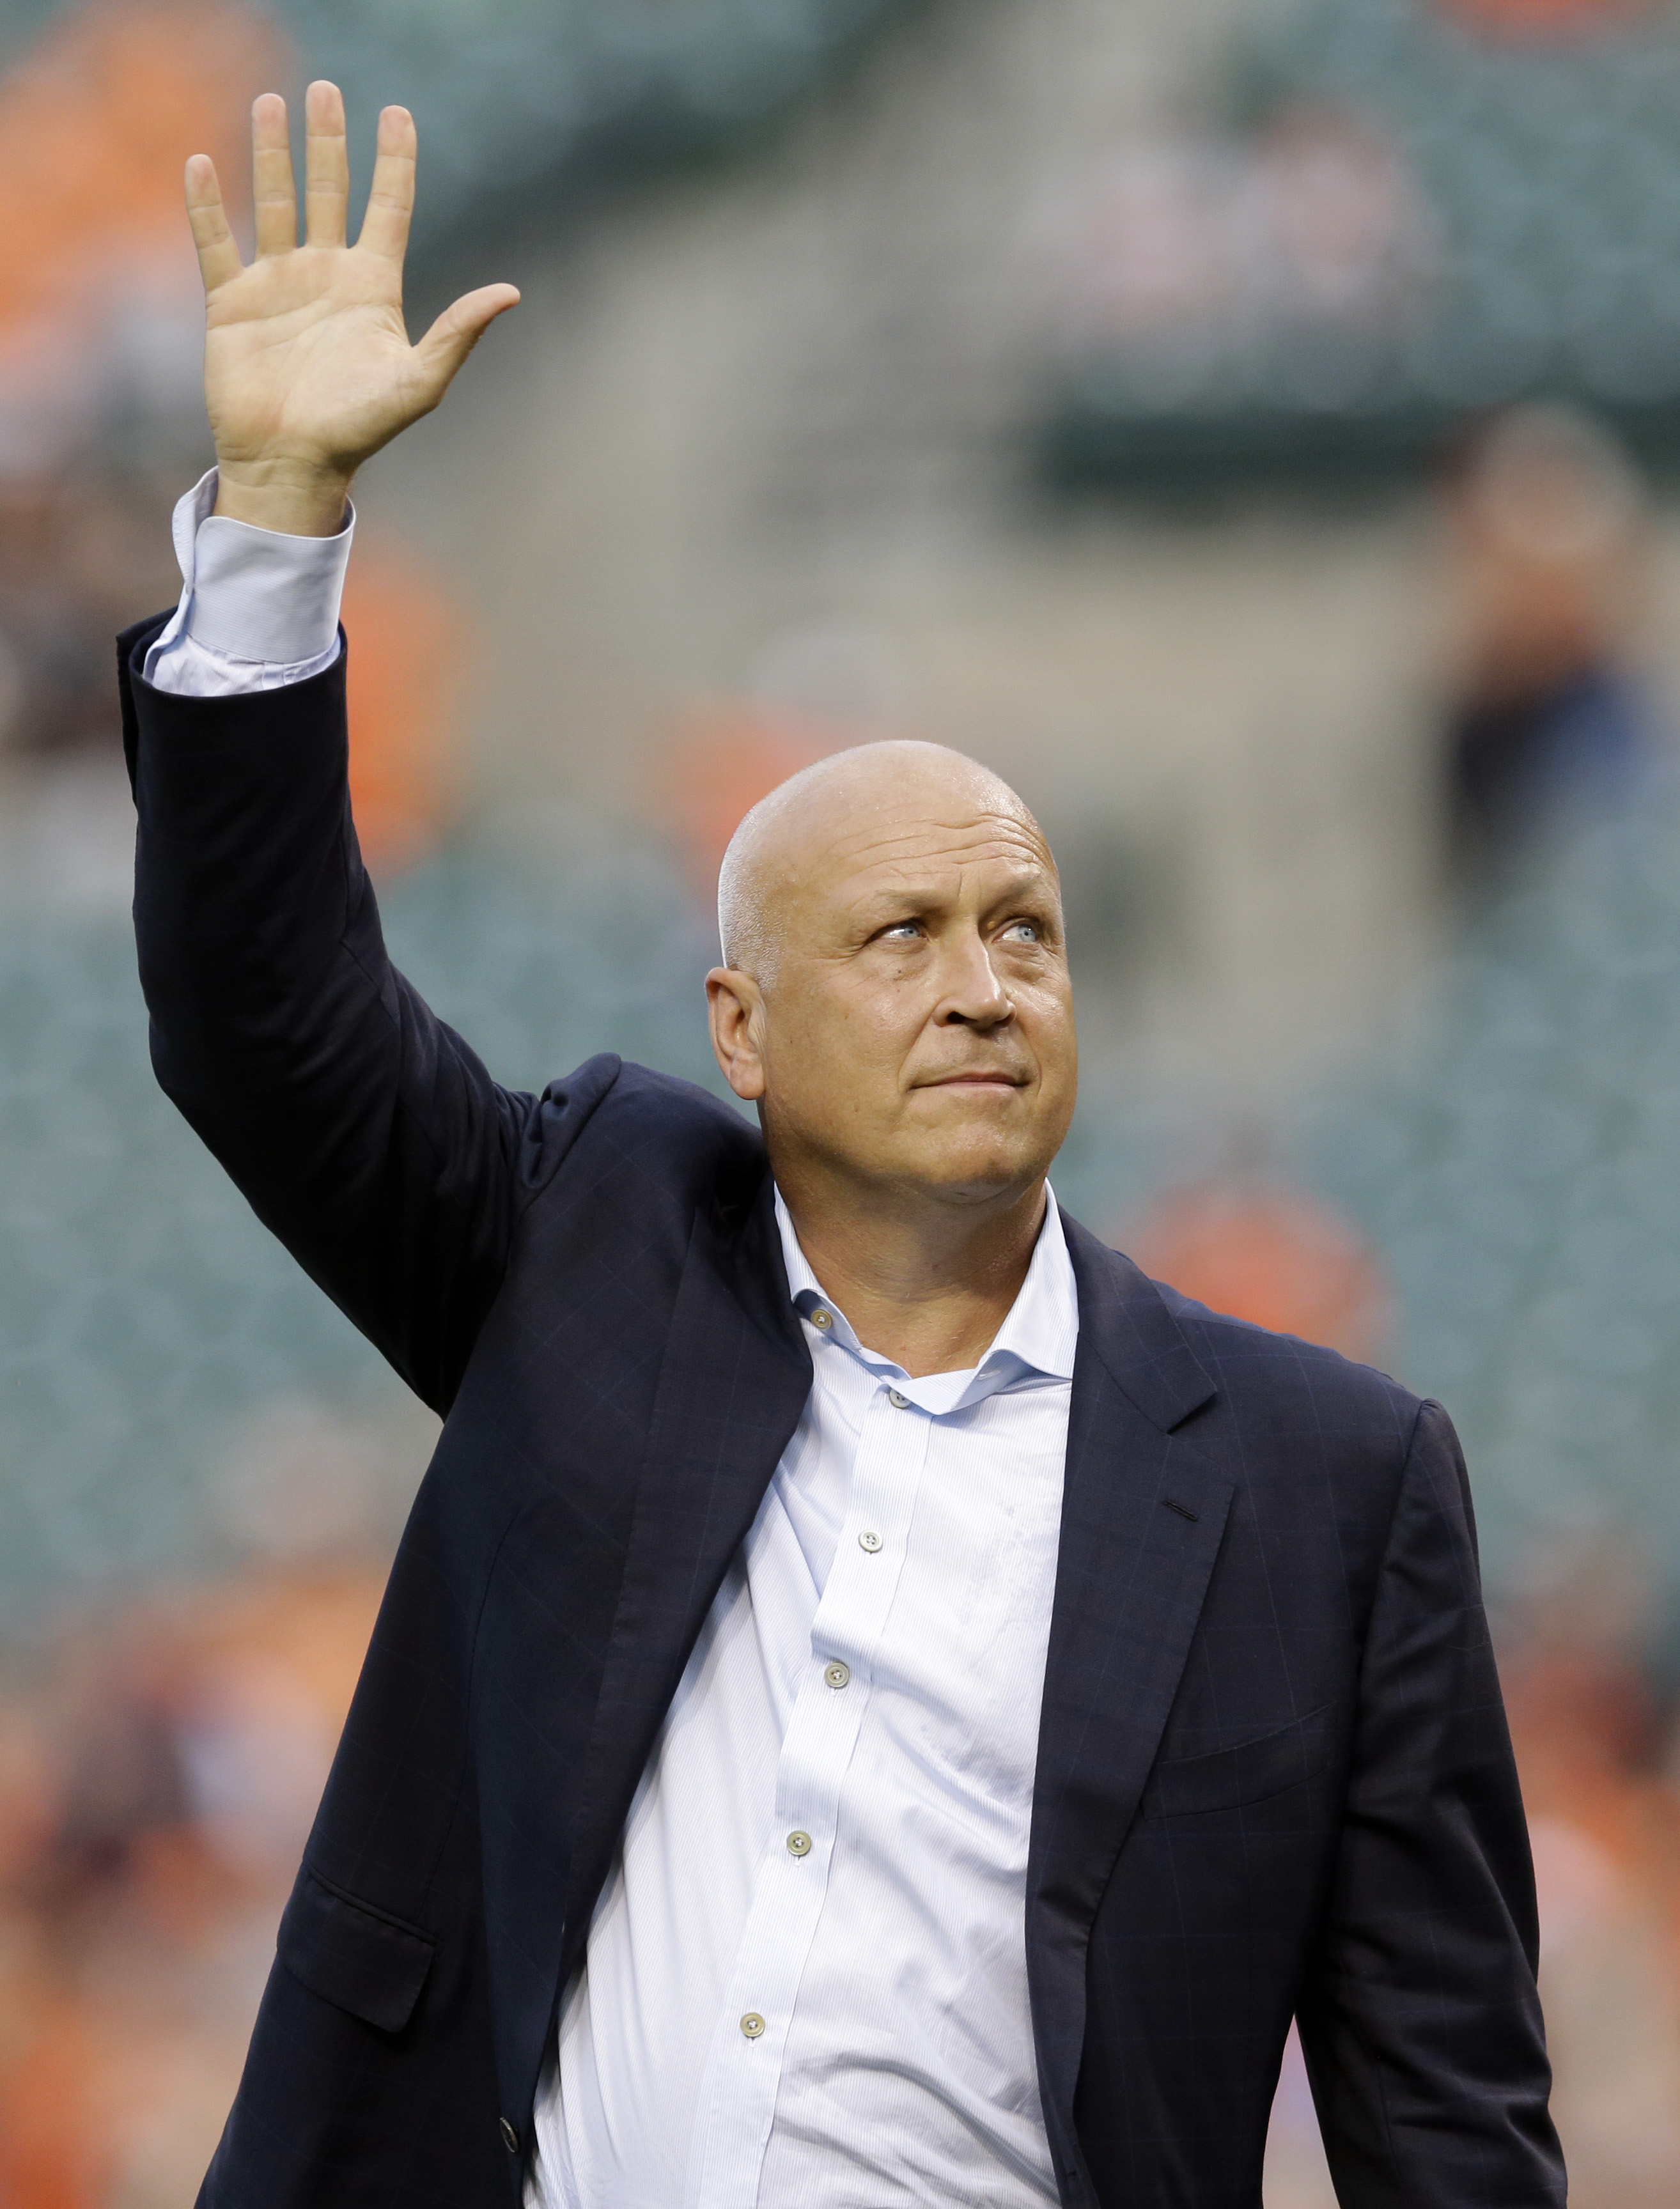 Cal Ripken Jr. weighs in on Nationals' manager job